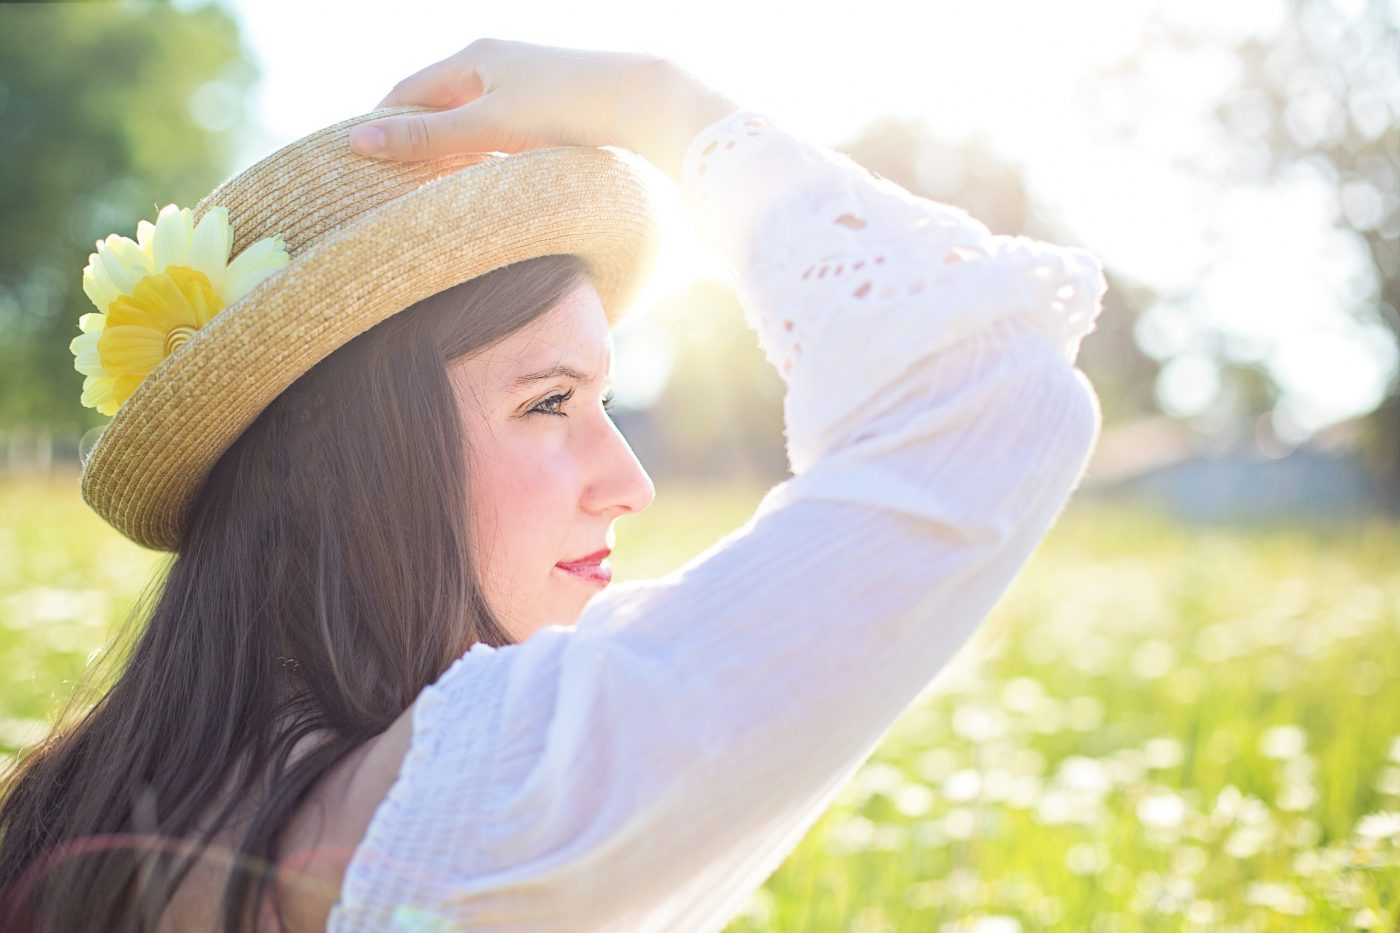 Woman in the sun with a hat. Staying drug free with sober coaching